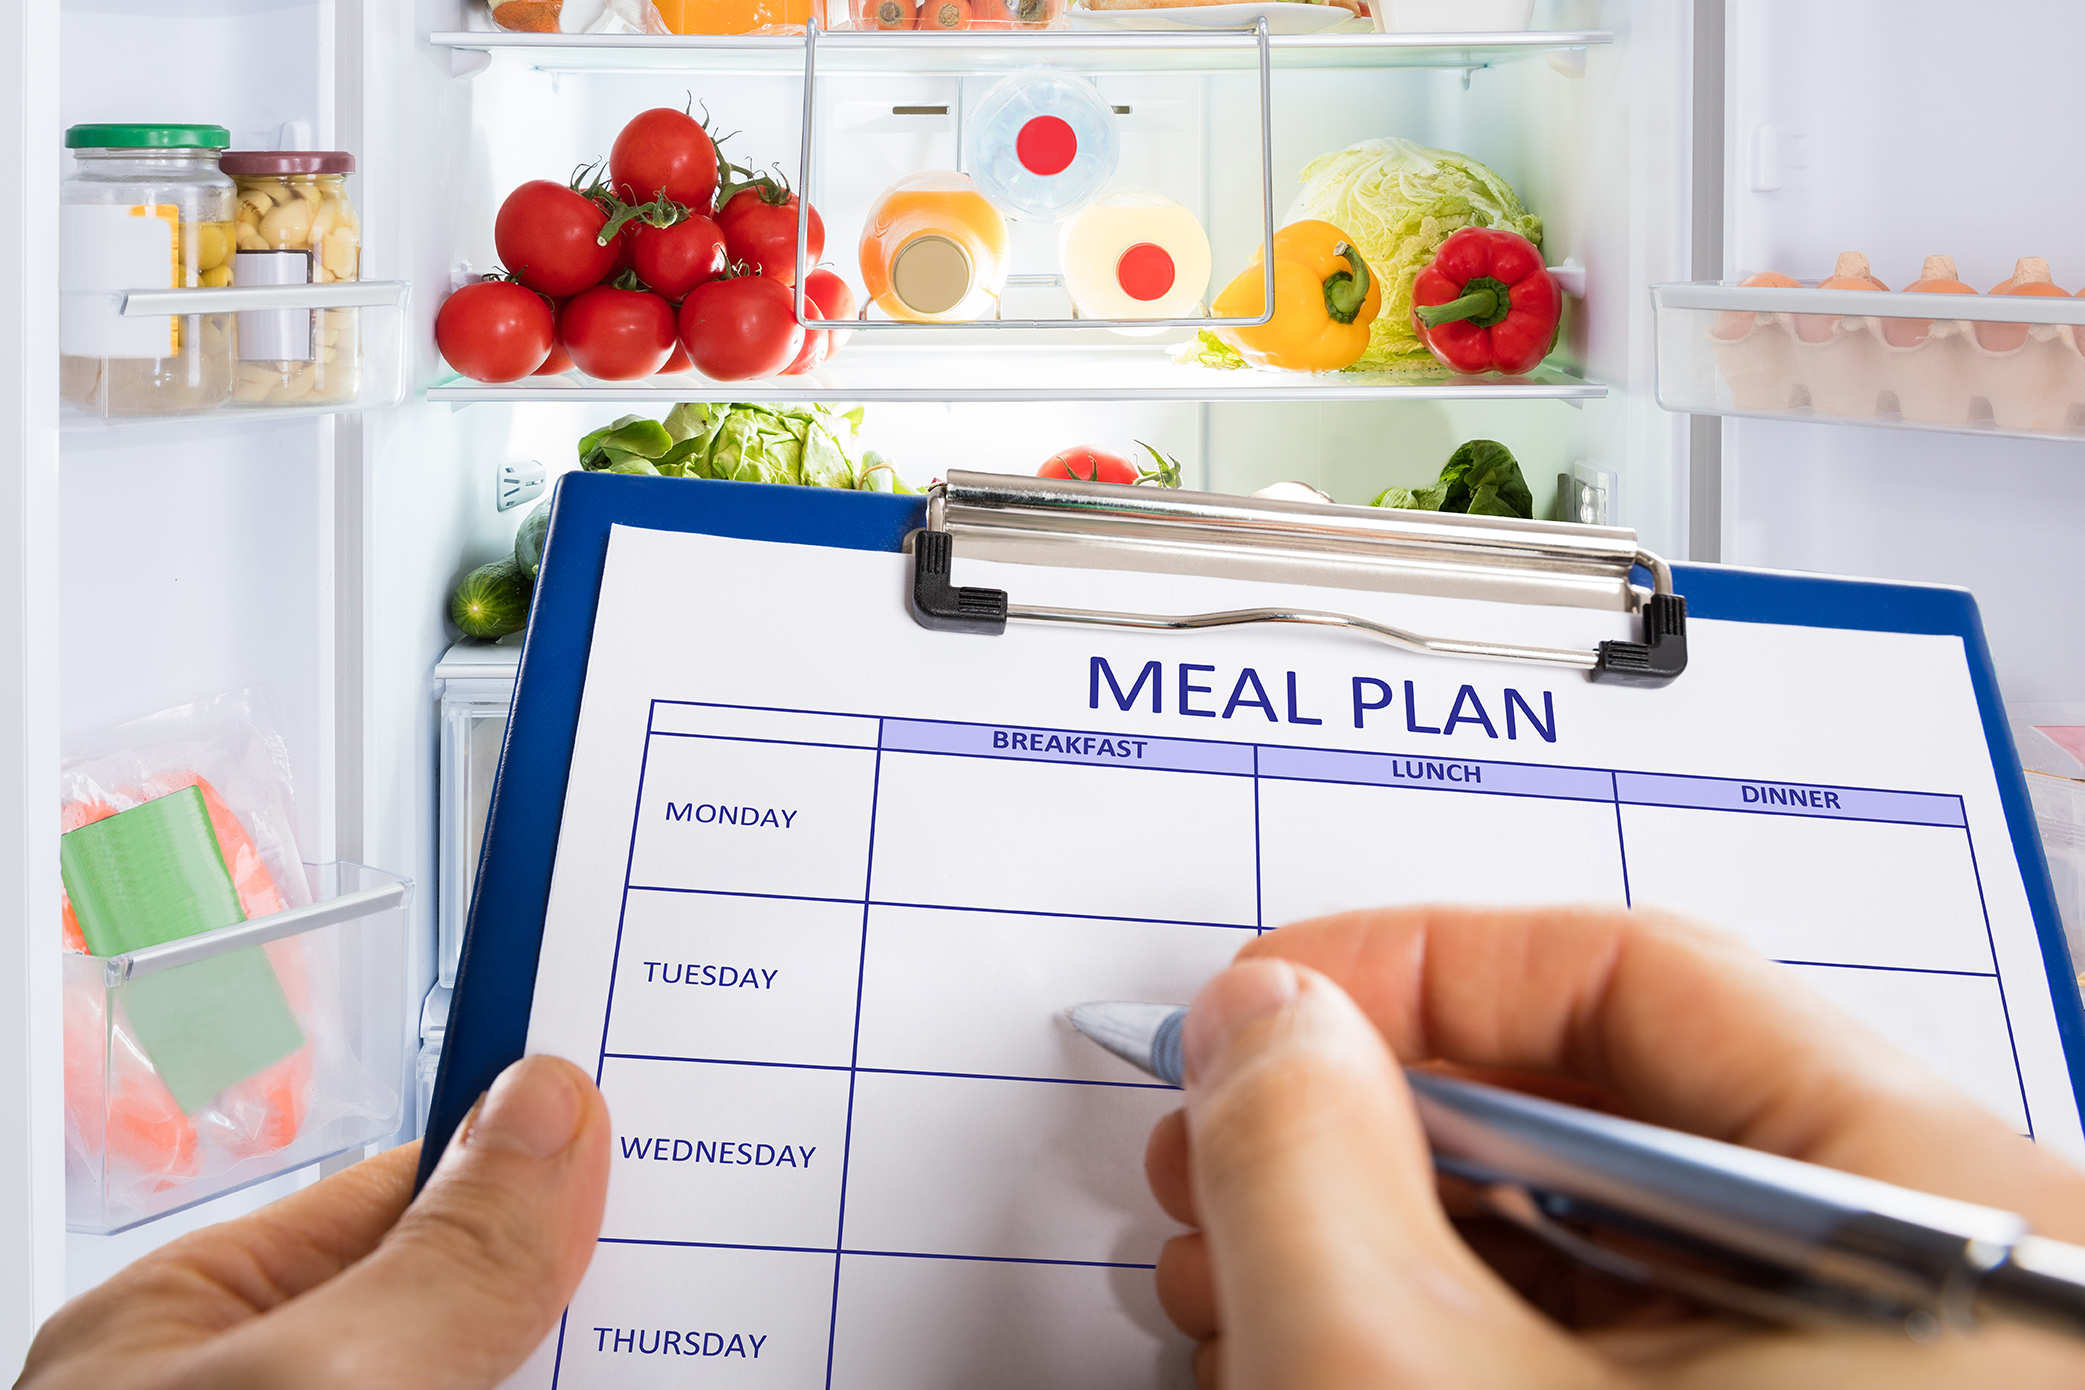 9 Helpful Hints for Organized Meal Planning